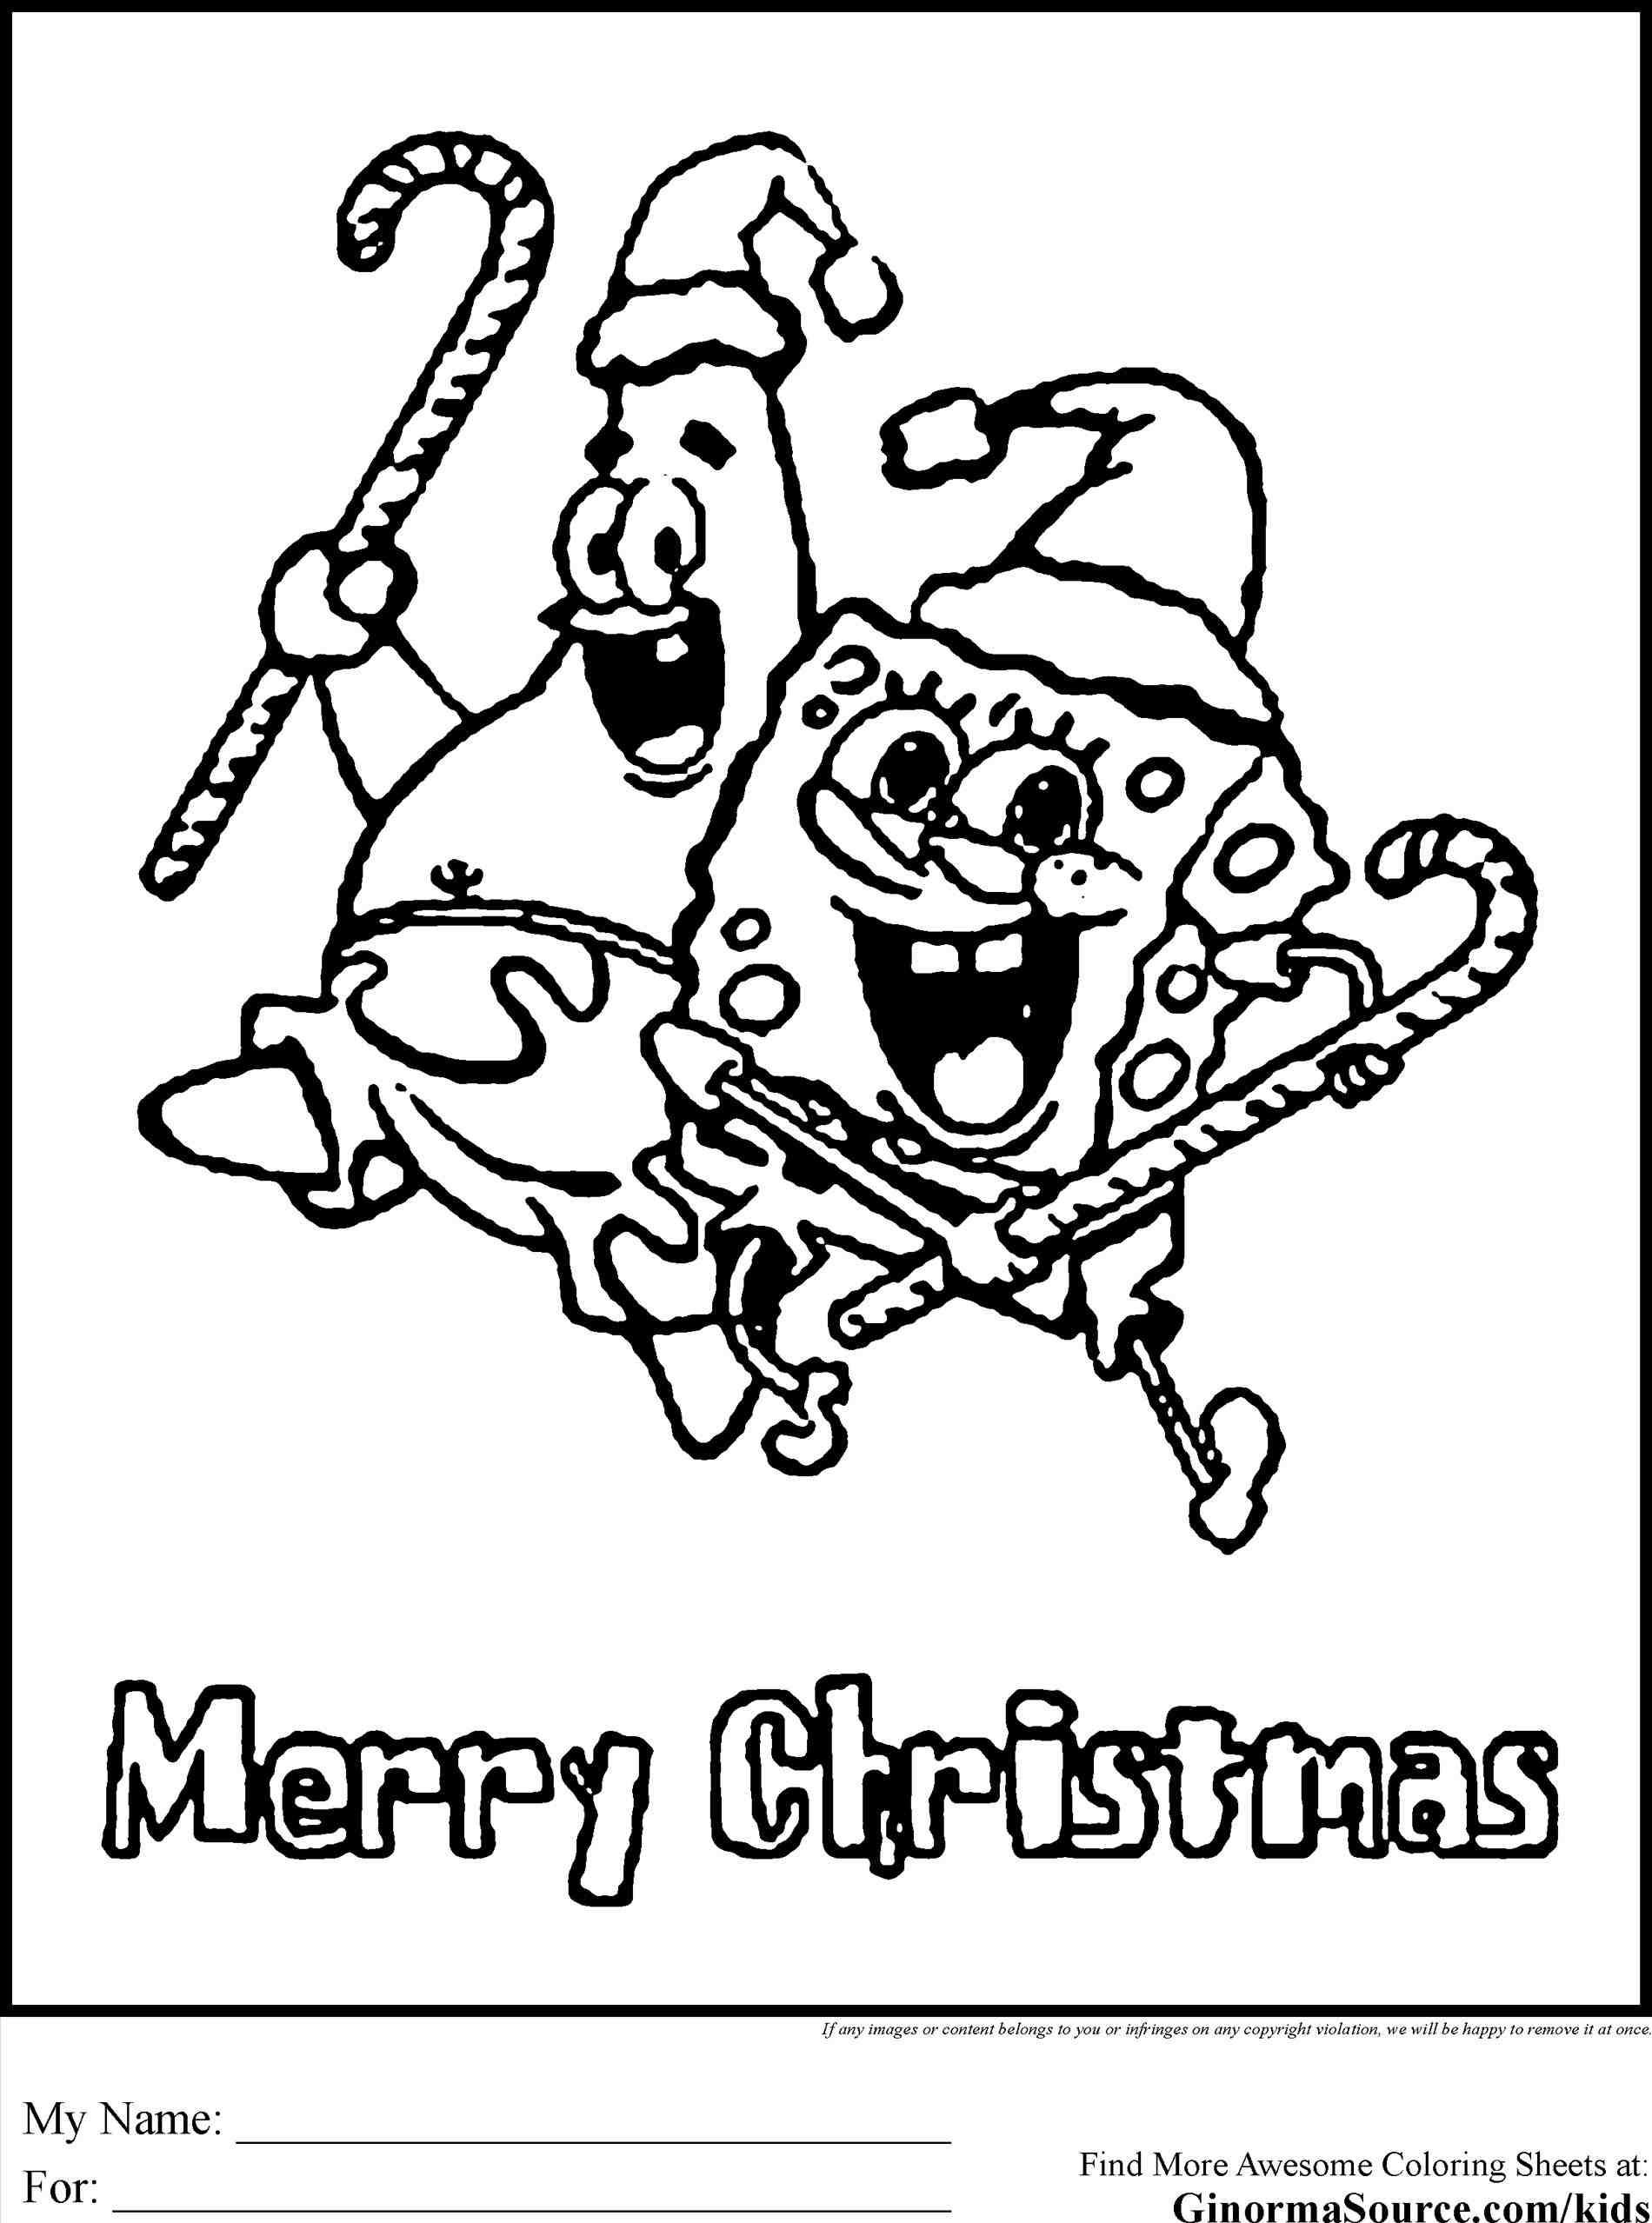 Spongebob Christmas Coloring Pages Wishing You Merry Who Lives In A Pineapple Under The Sea SpongeBob SquarePants Yellow And Porous Is He